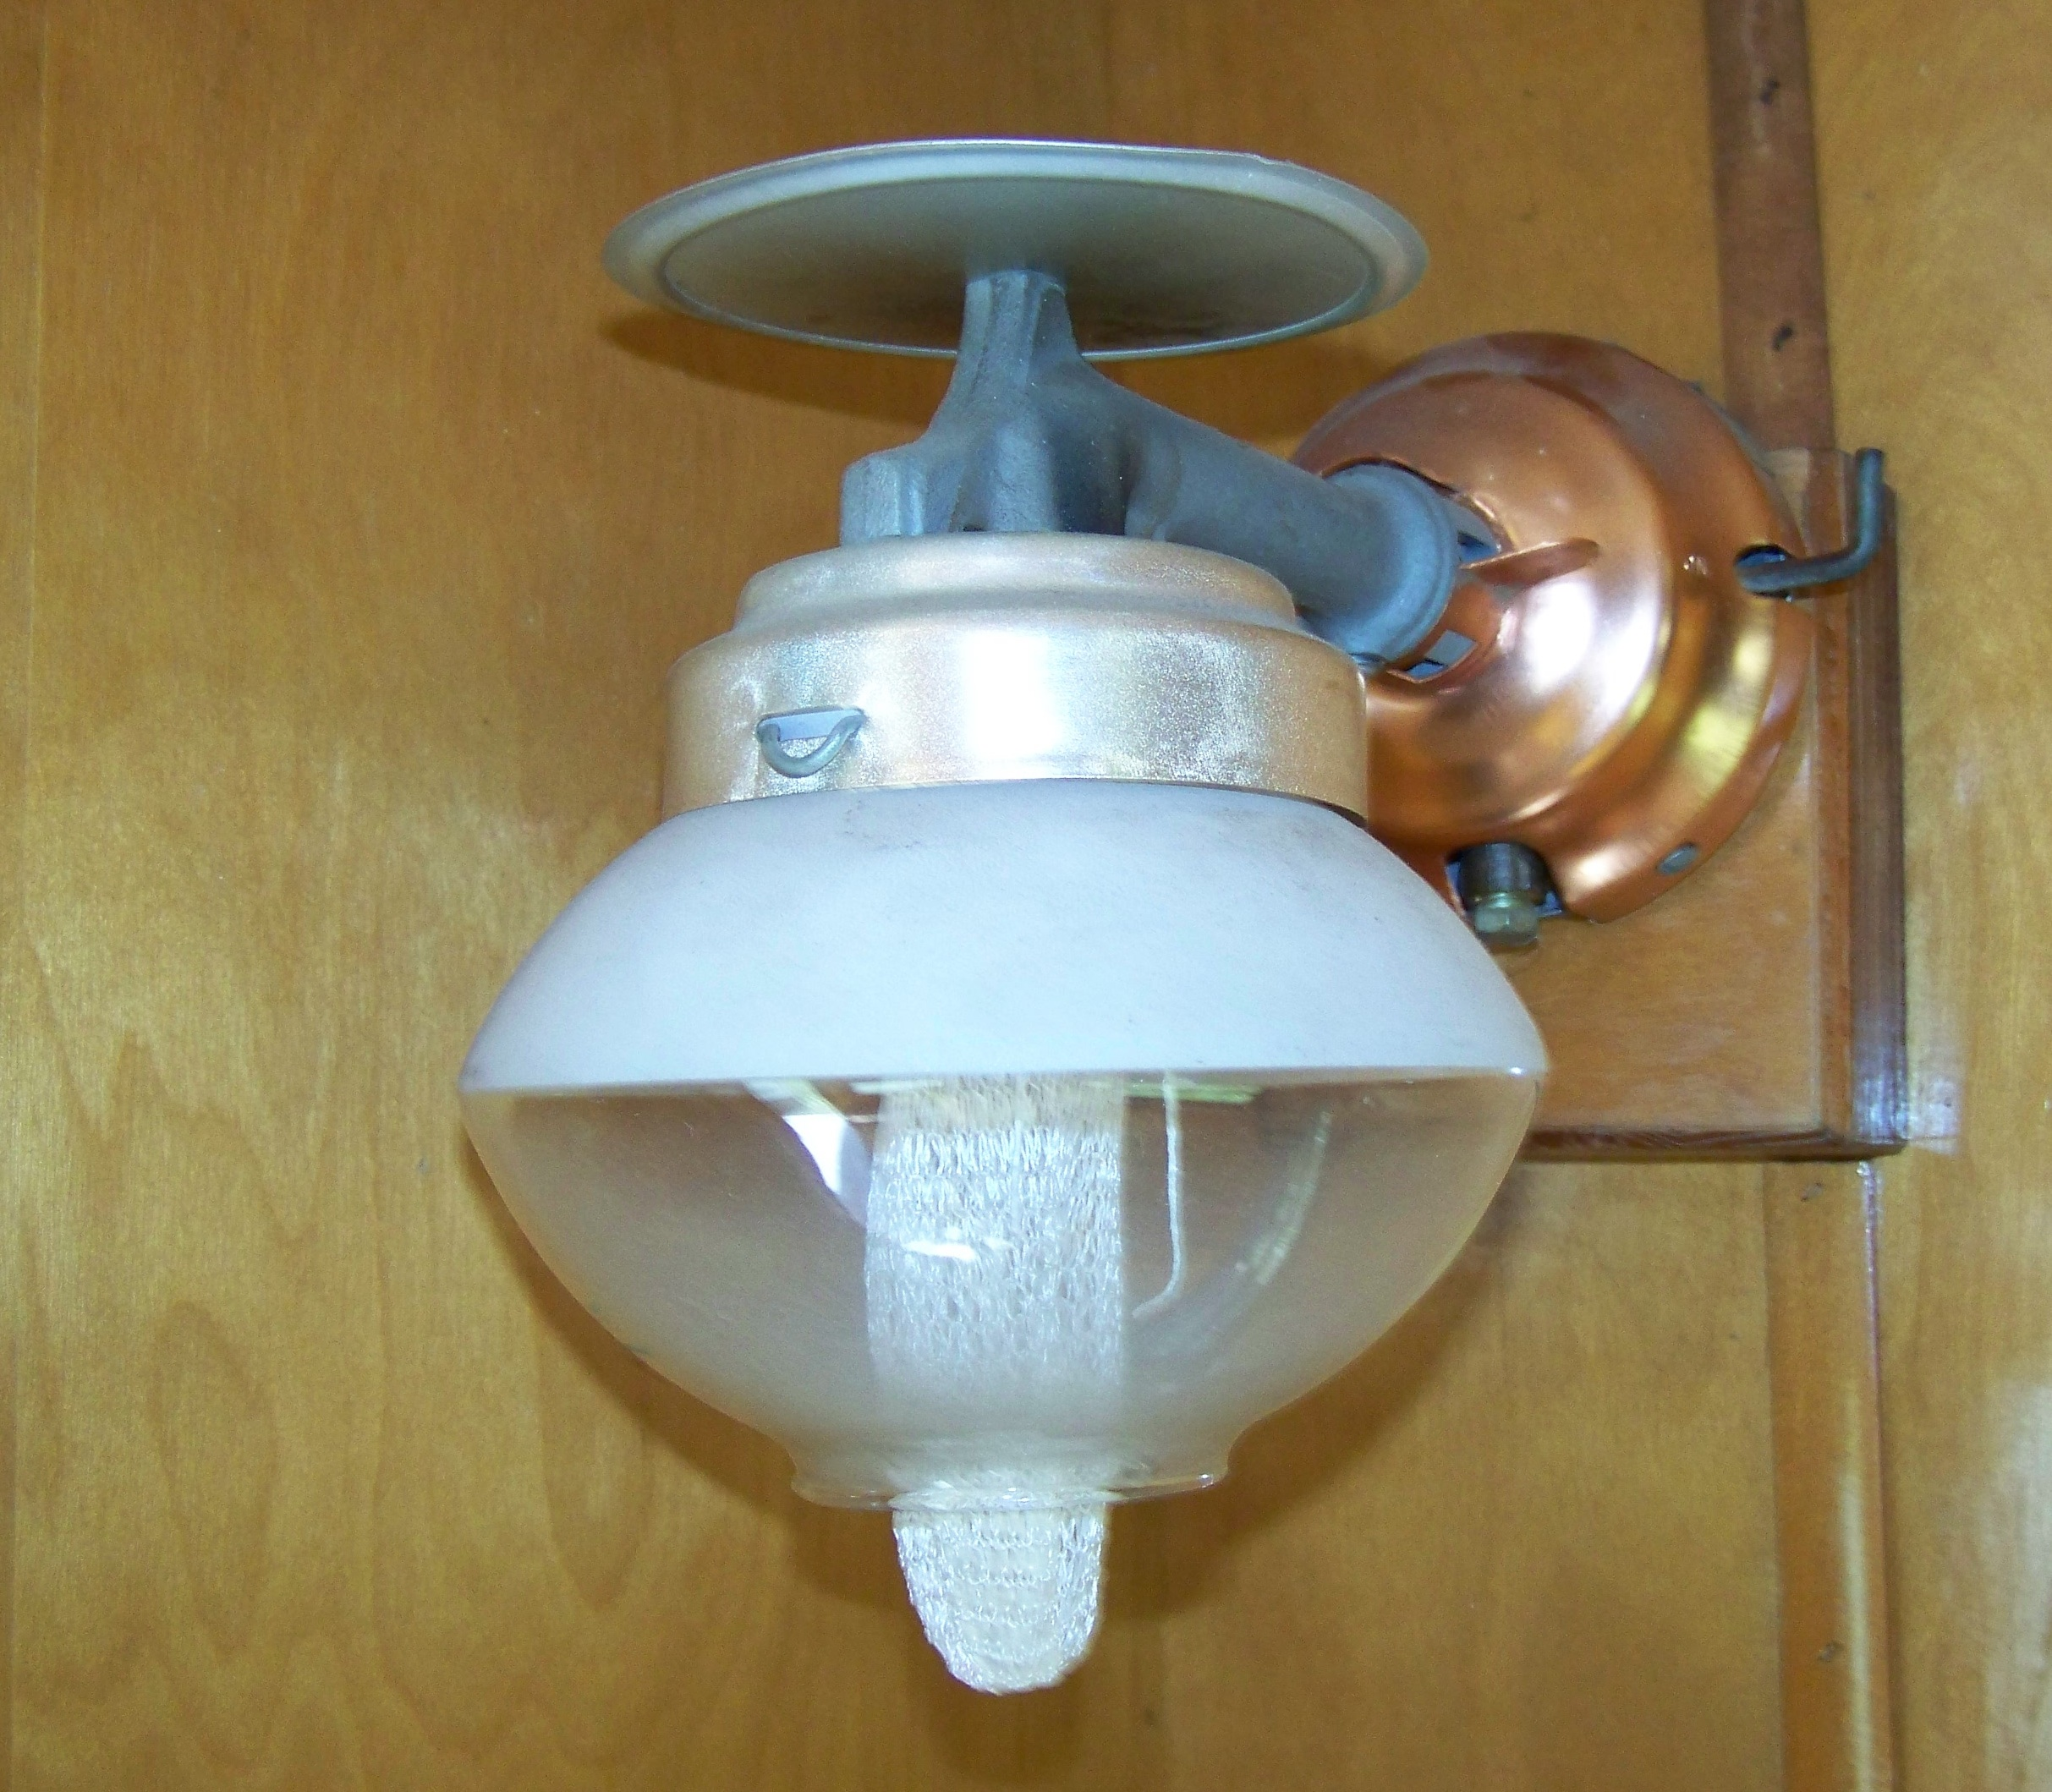 Original gas lamp in the Avalon (before it was The COMET)